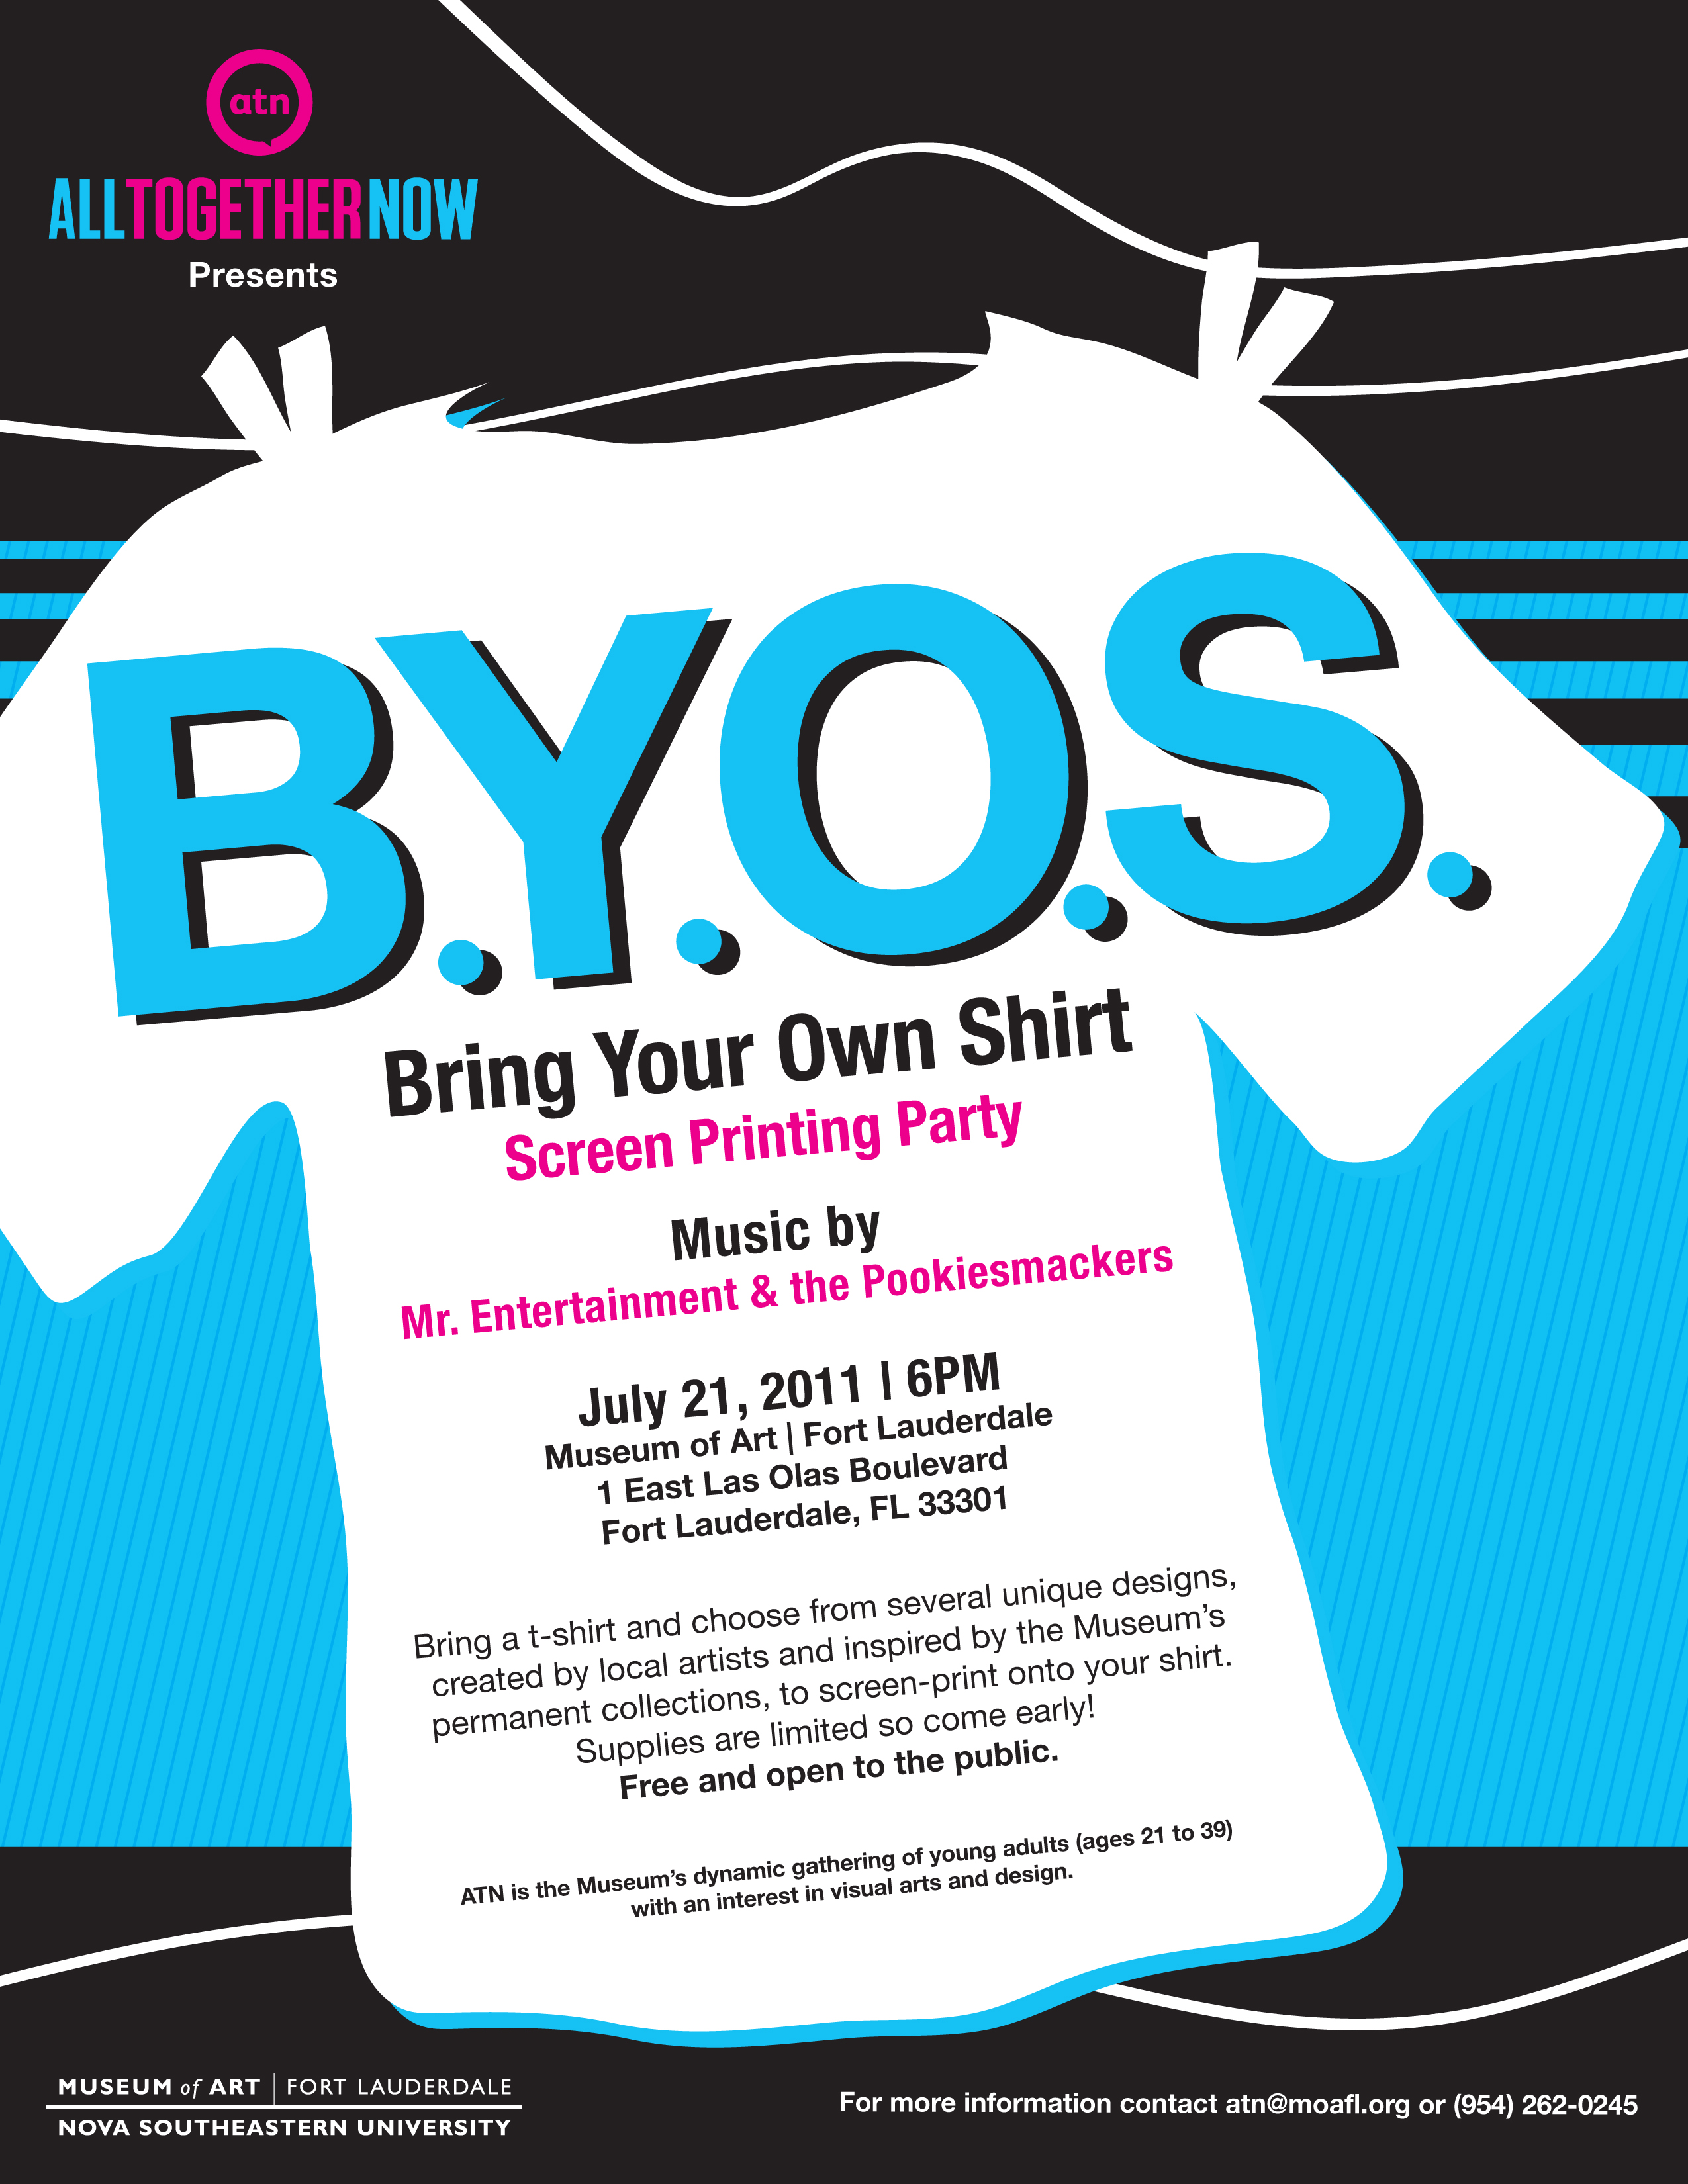 museum of art to host b y o s  screen printing party  july